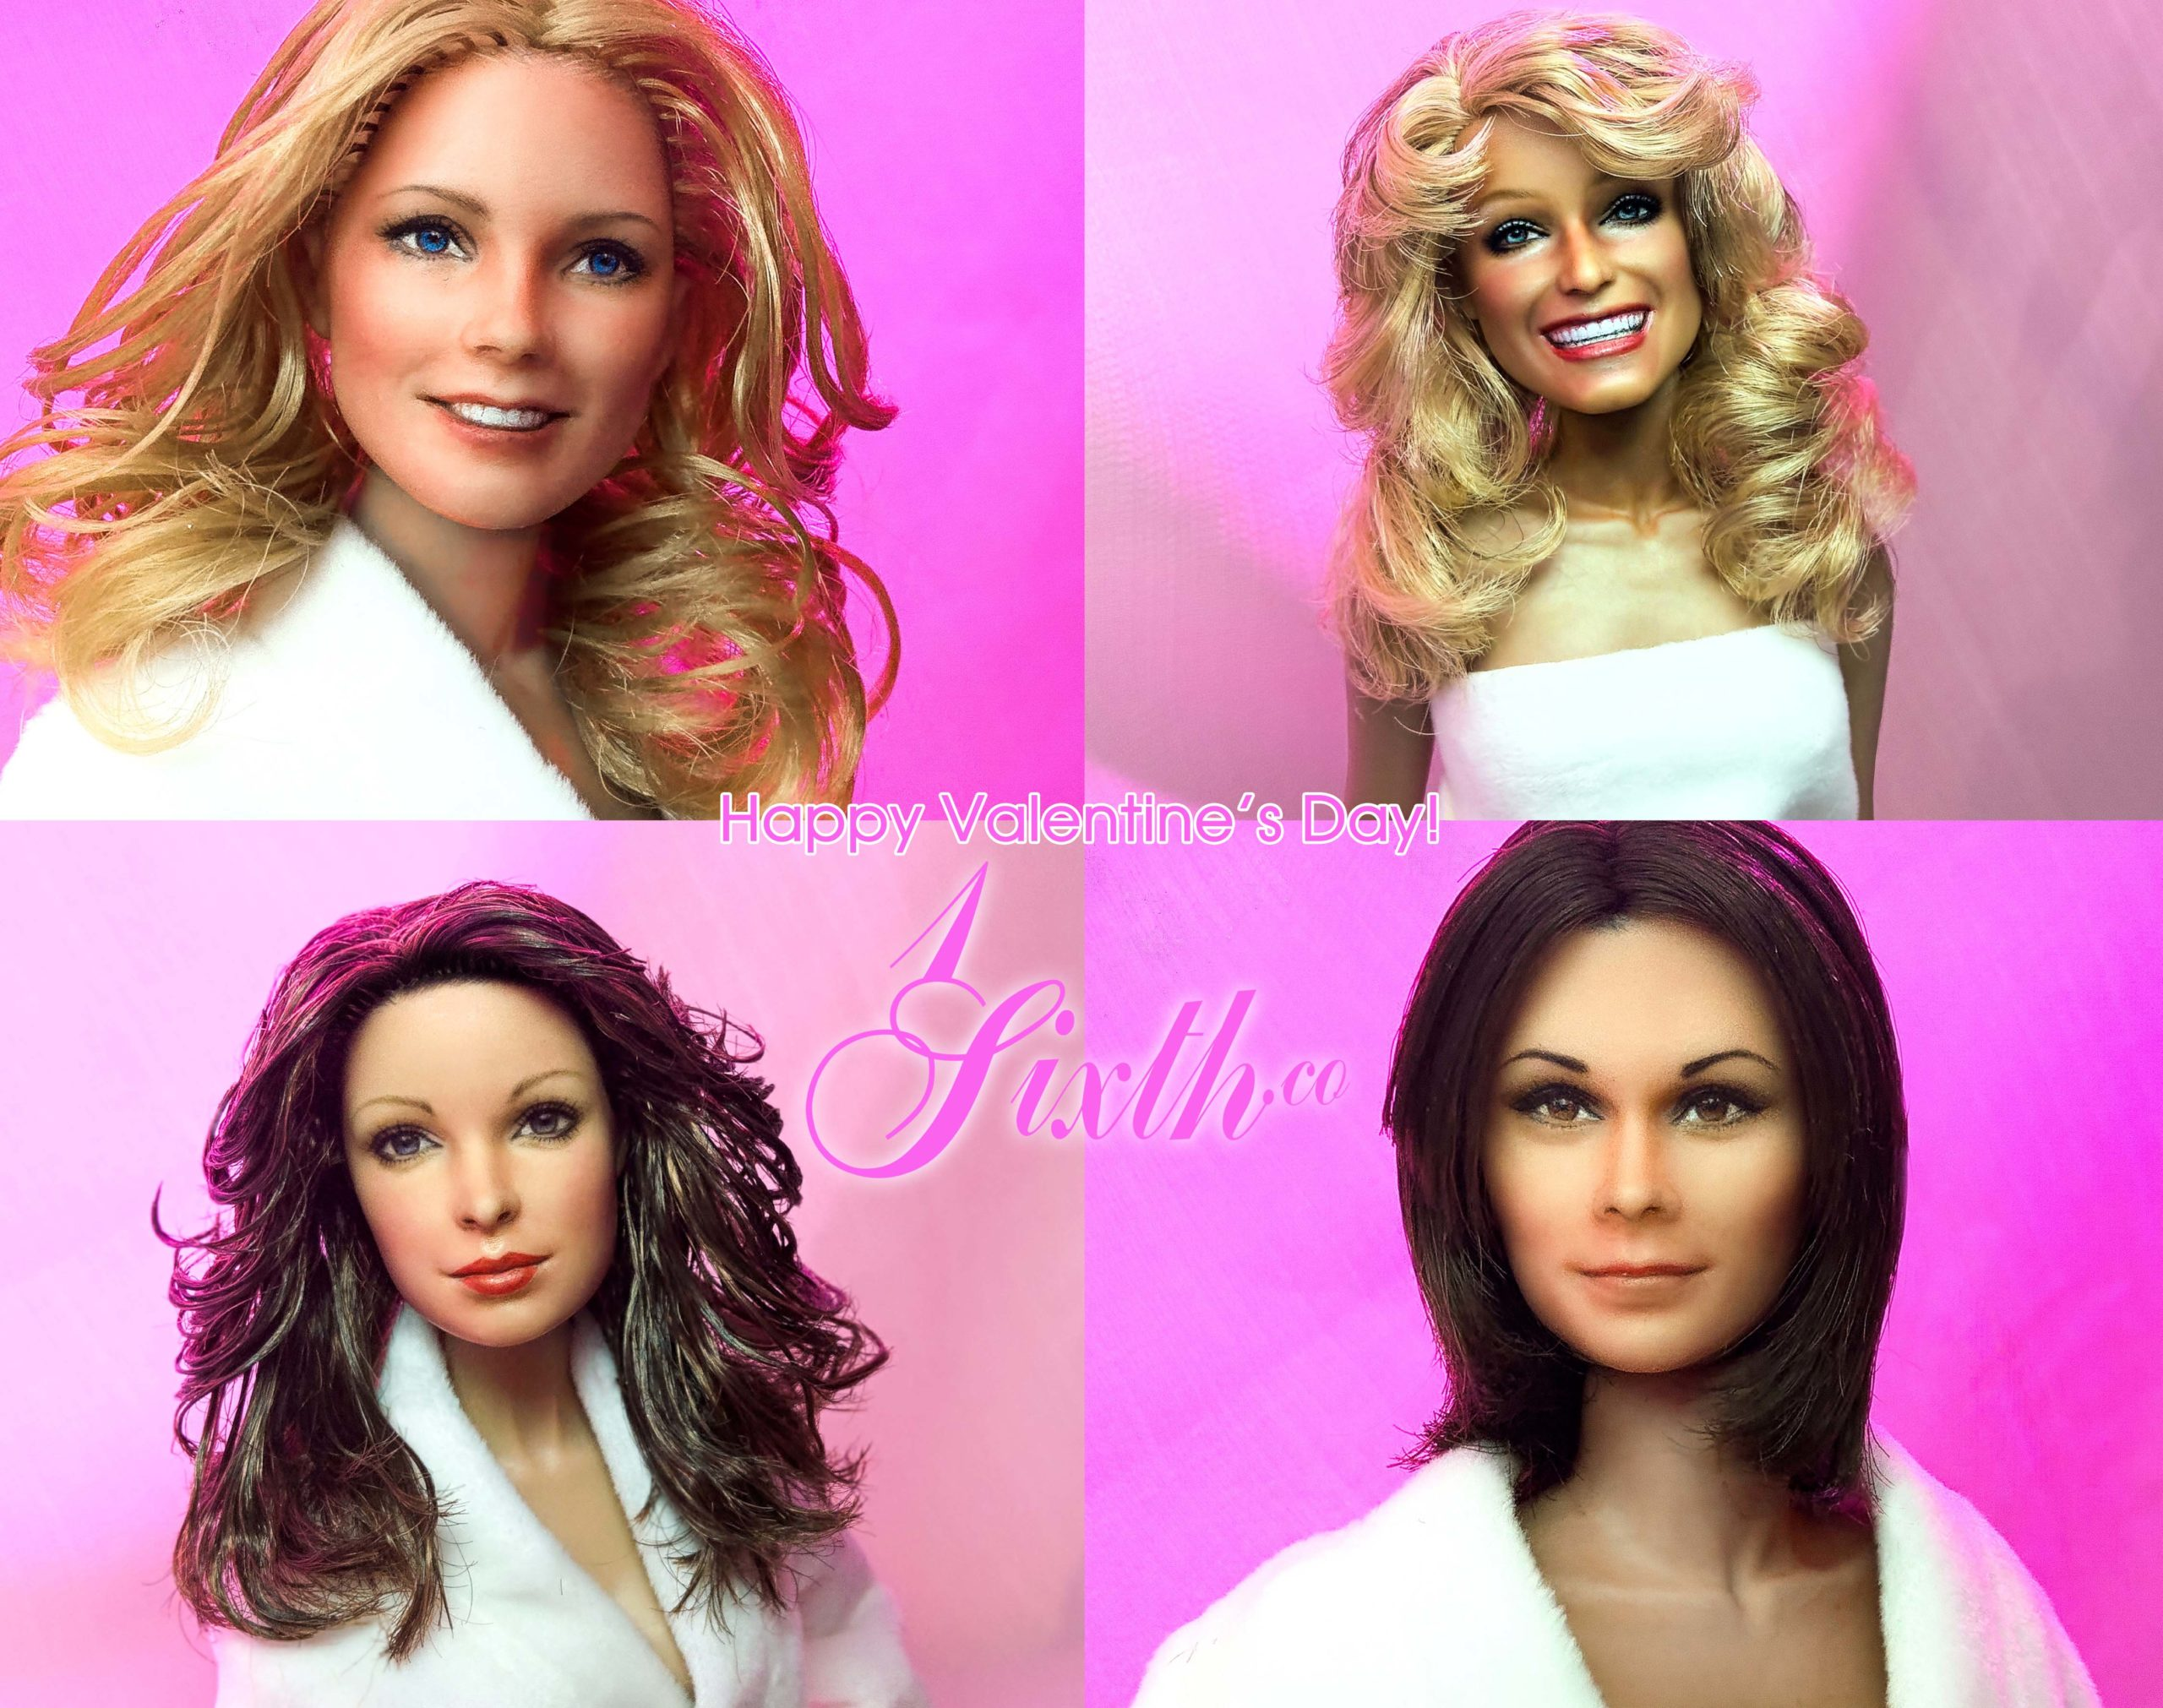 Happy Valentine's Day to you all from https://1sixth.co/ & https://1sixthworld.com/ Celebrating the holiday with Cheryl Ladd, Farrah Fawcett, Jaclyn Smith and Kate Jackson as repainted by artist Noel Cruz!